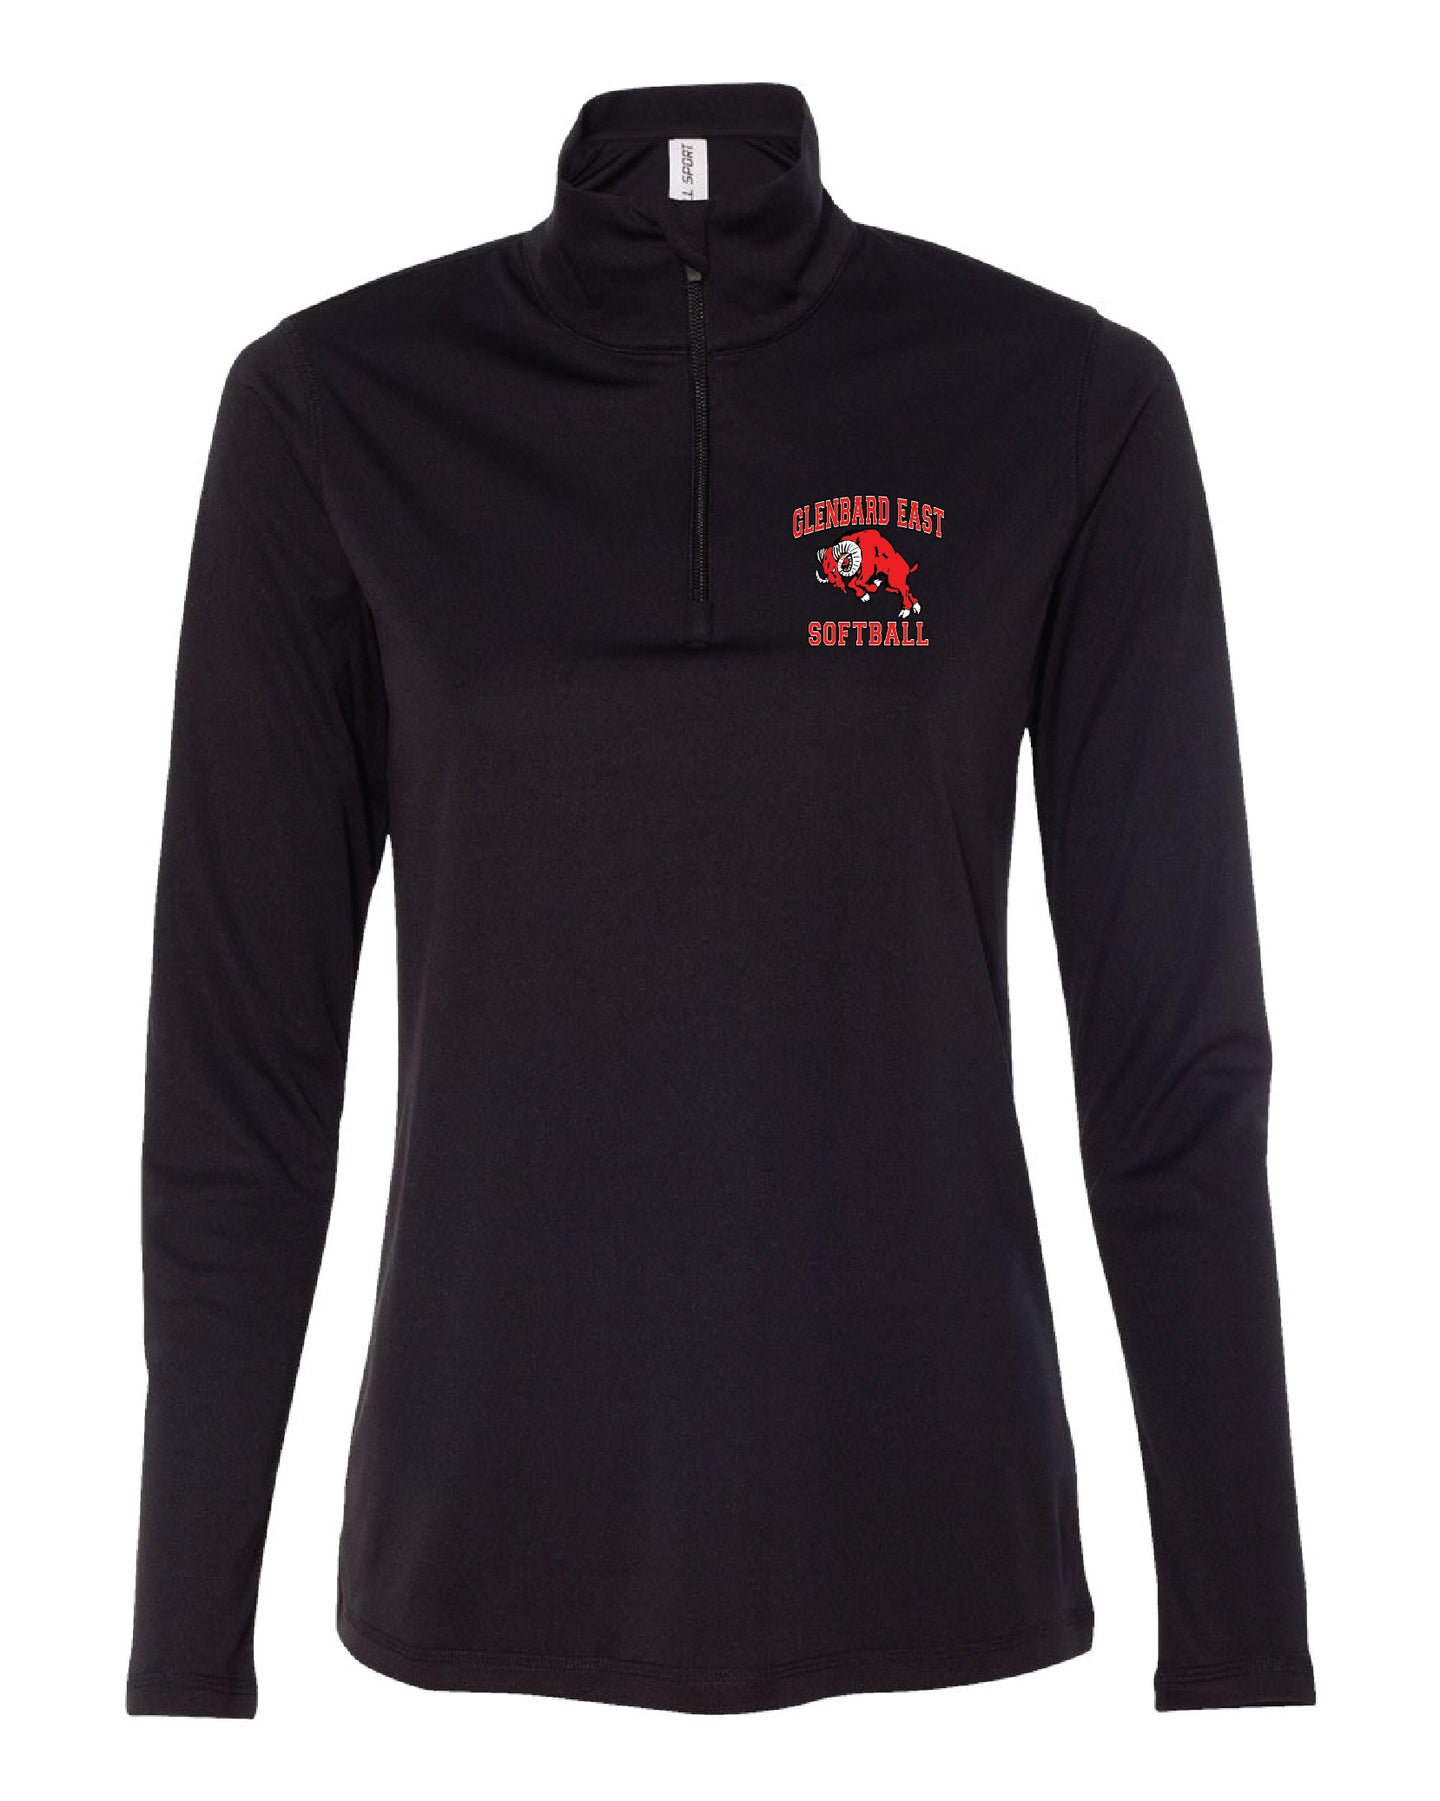 Softball Ladies Quarter Zip